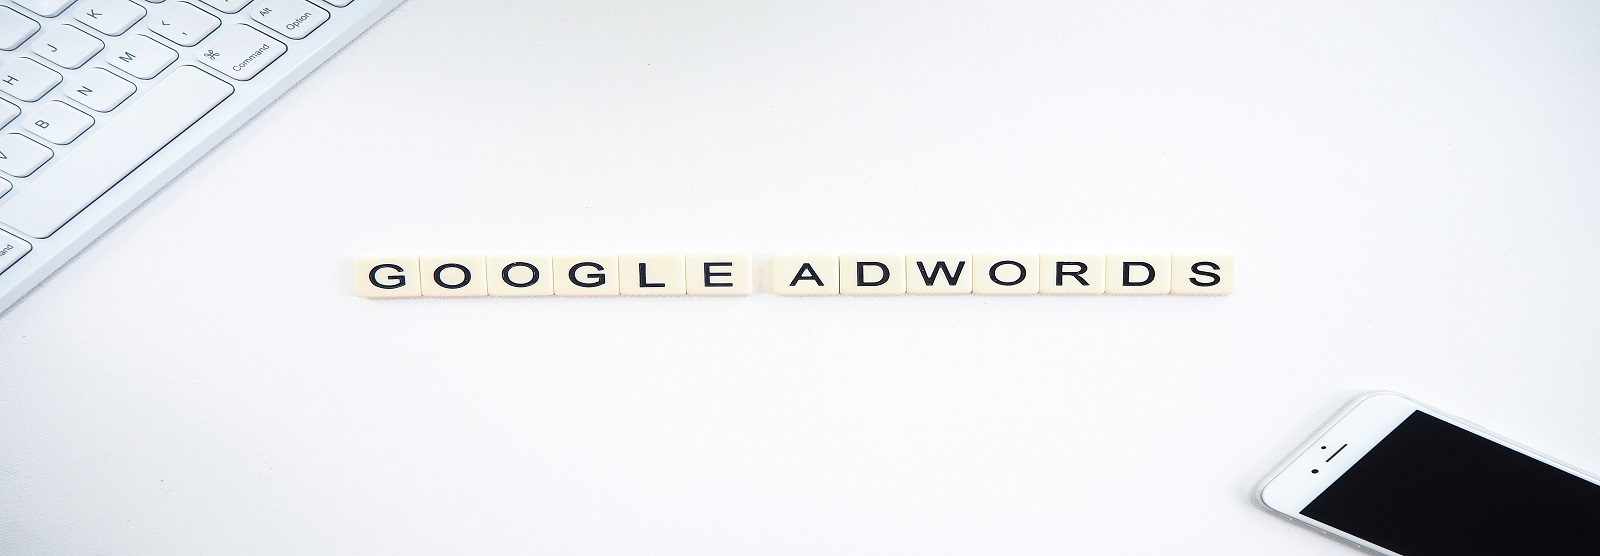 How to Use Google AdWords for Your Salon Business